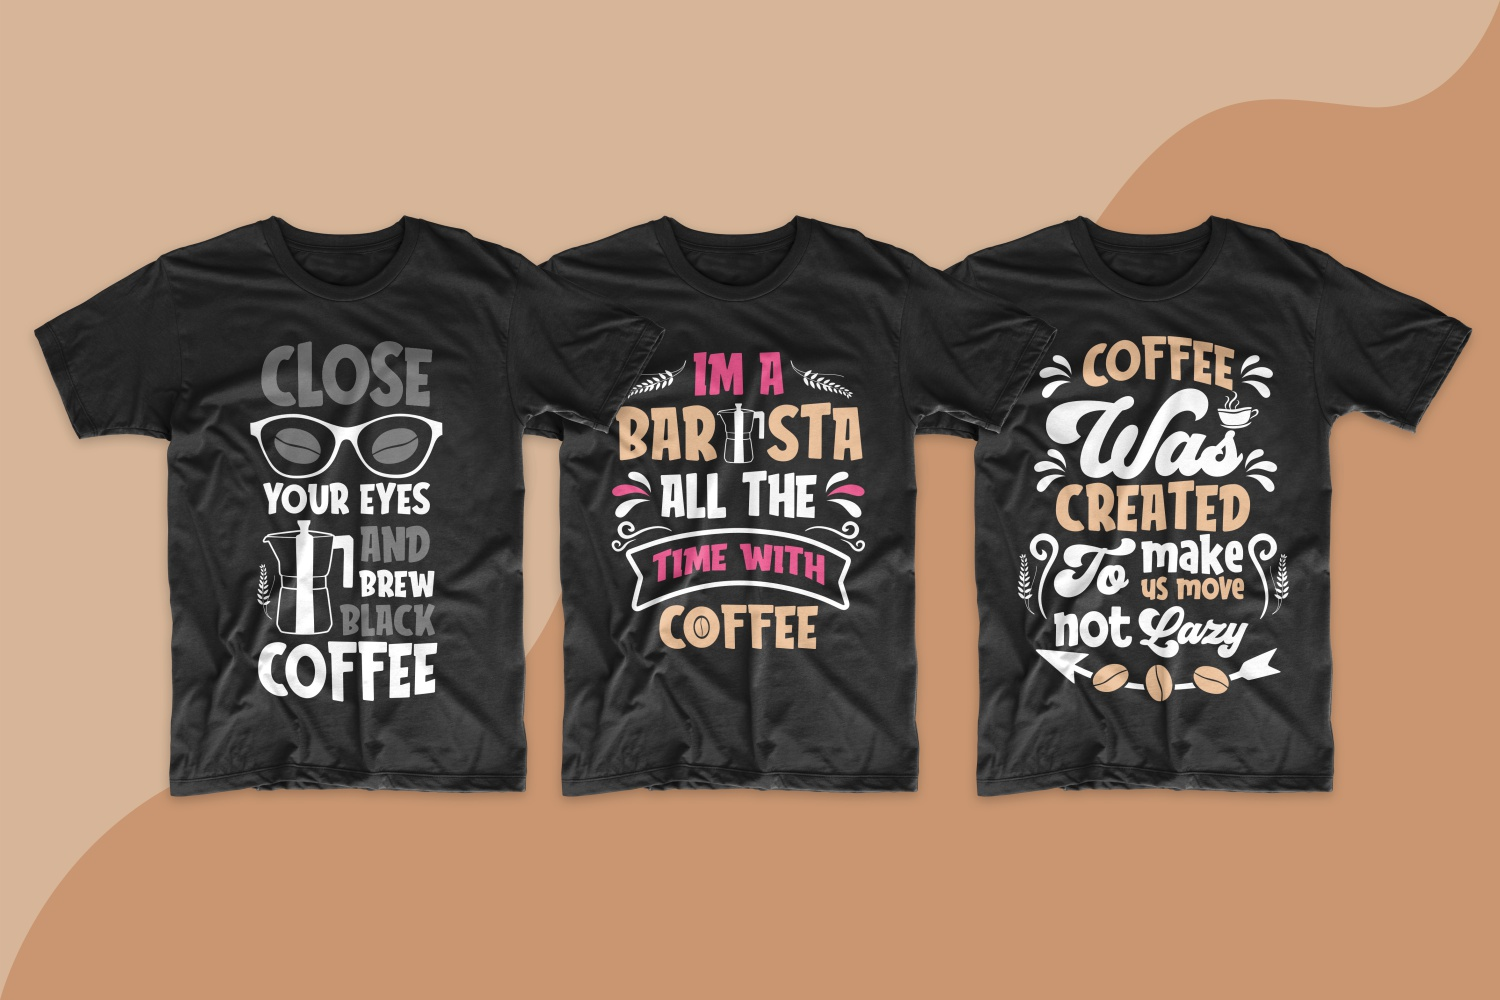 Men's T-shirts with bright colors and inscriptions about the necessity of coffee in life.